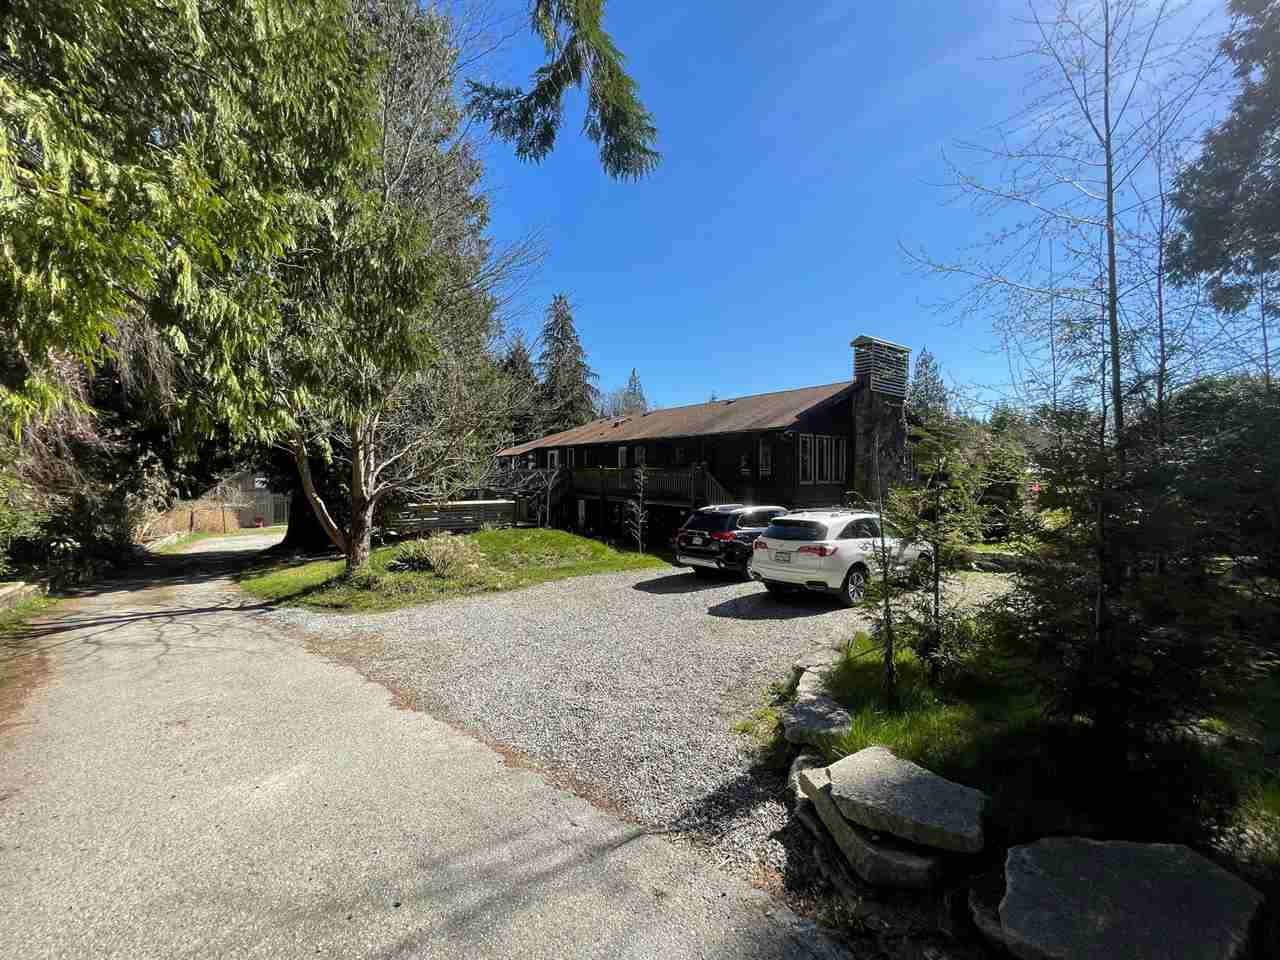 978 NORTH ROAD - Gibsons & Area House/Single Family for sale, 9 Bedrooms (R2566421) - #1